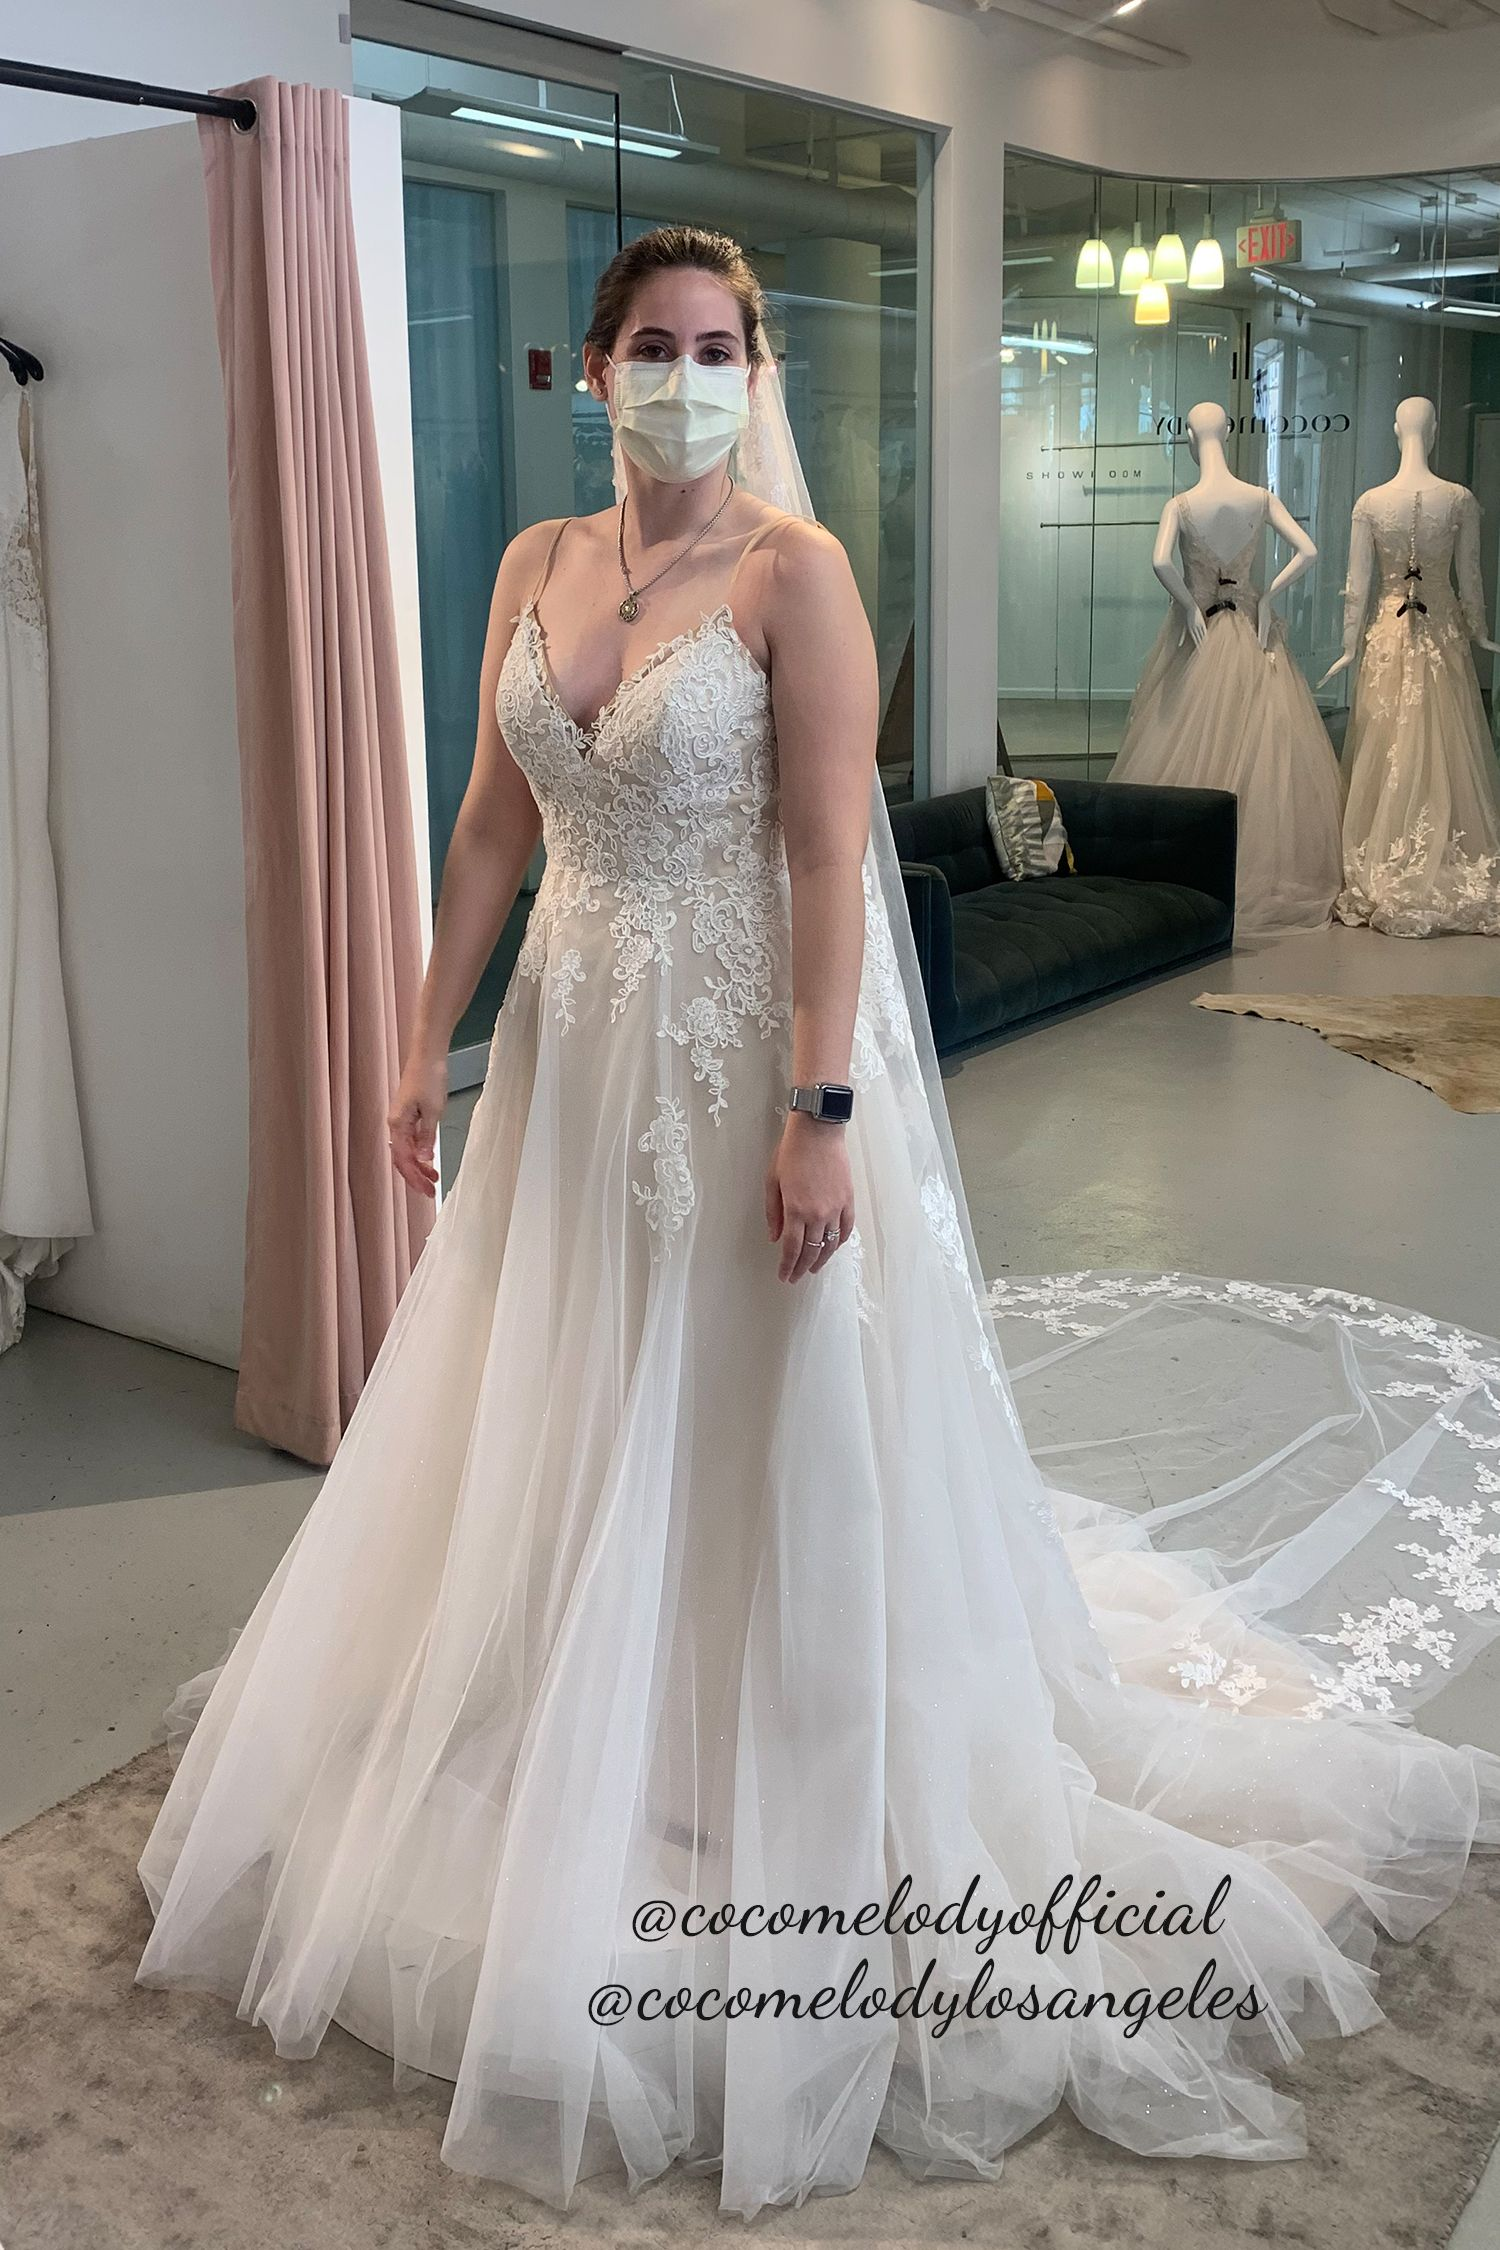 Enjoy Your Bridal Fitting At Cocomelody Bridal Stores In 2020 Wedding Dresses Bridesmaid Dresses Wedding Dresses Lace